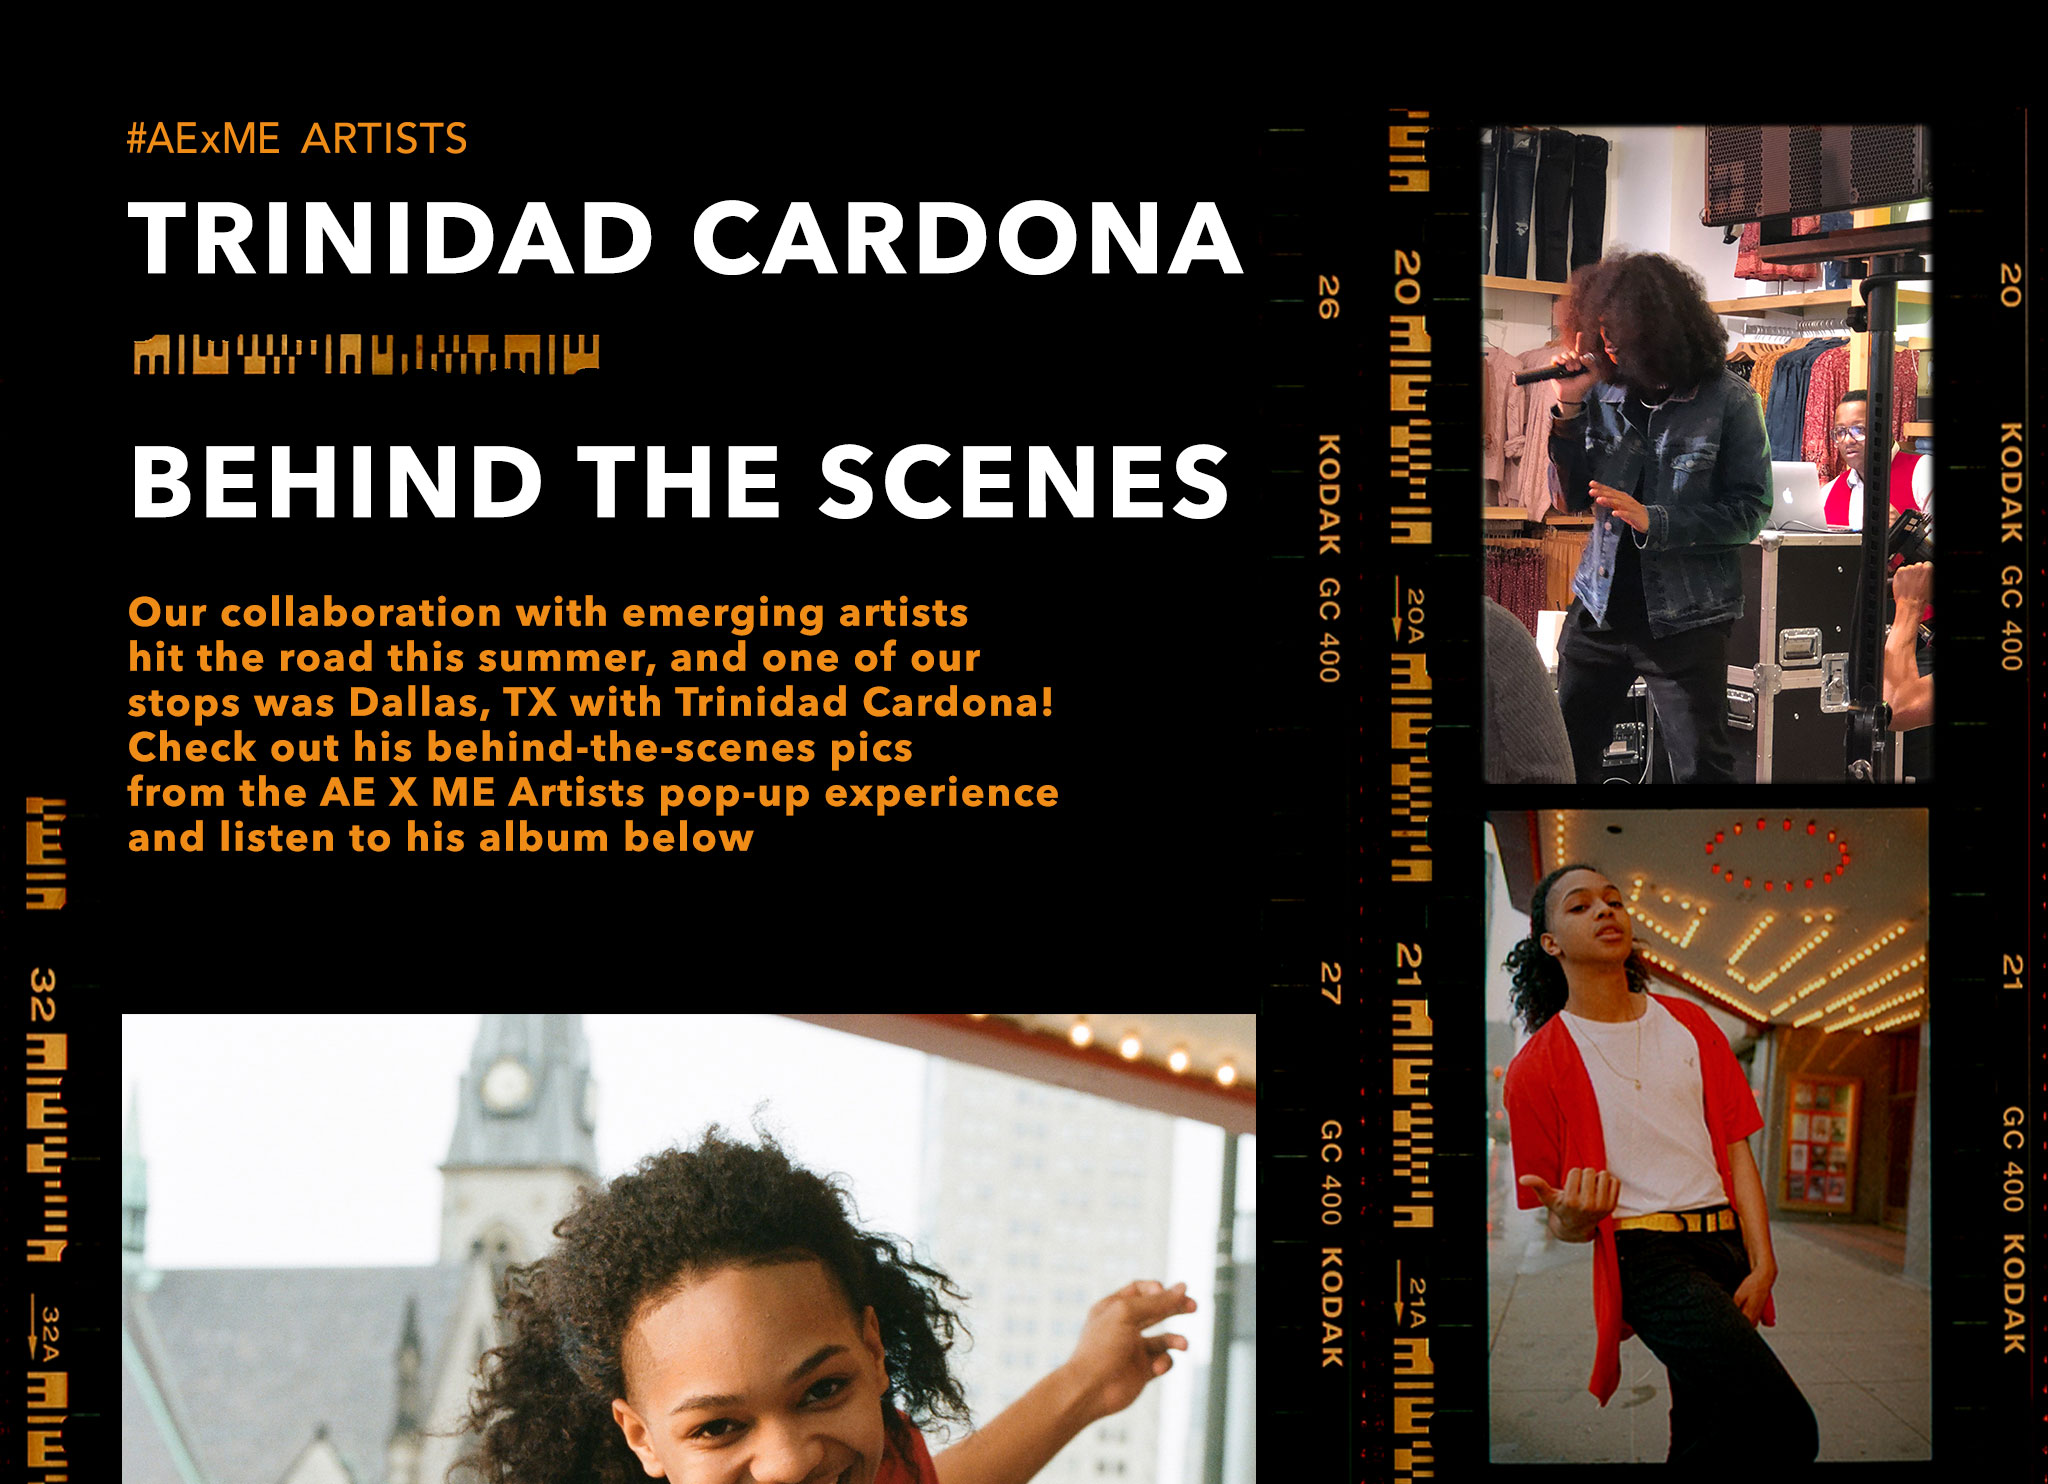 #AExME Artists Trinidad Cardona